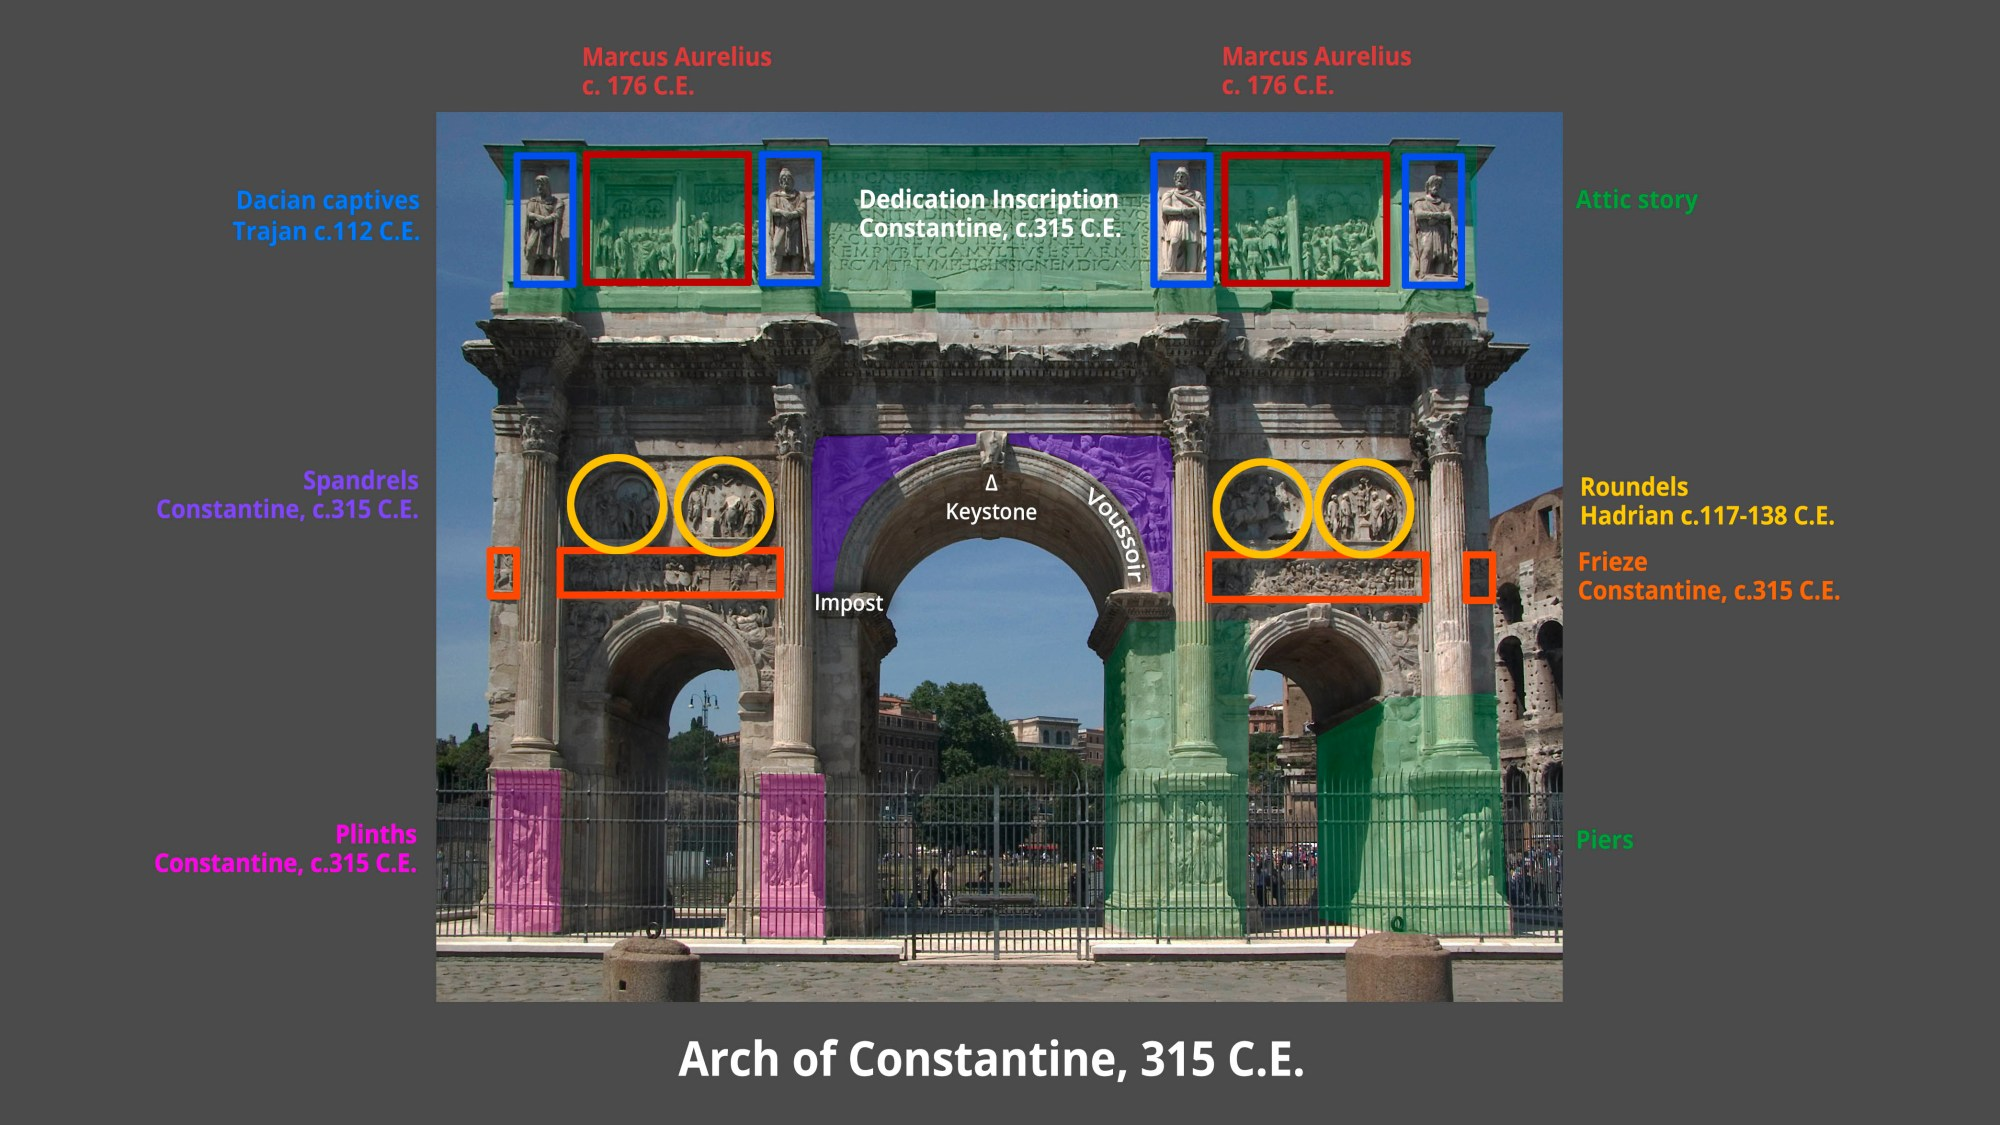 hight resolution of diagram of the arch of constantine showing architectural features and spolia 312 315 c e